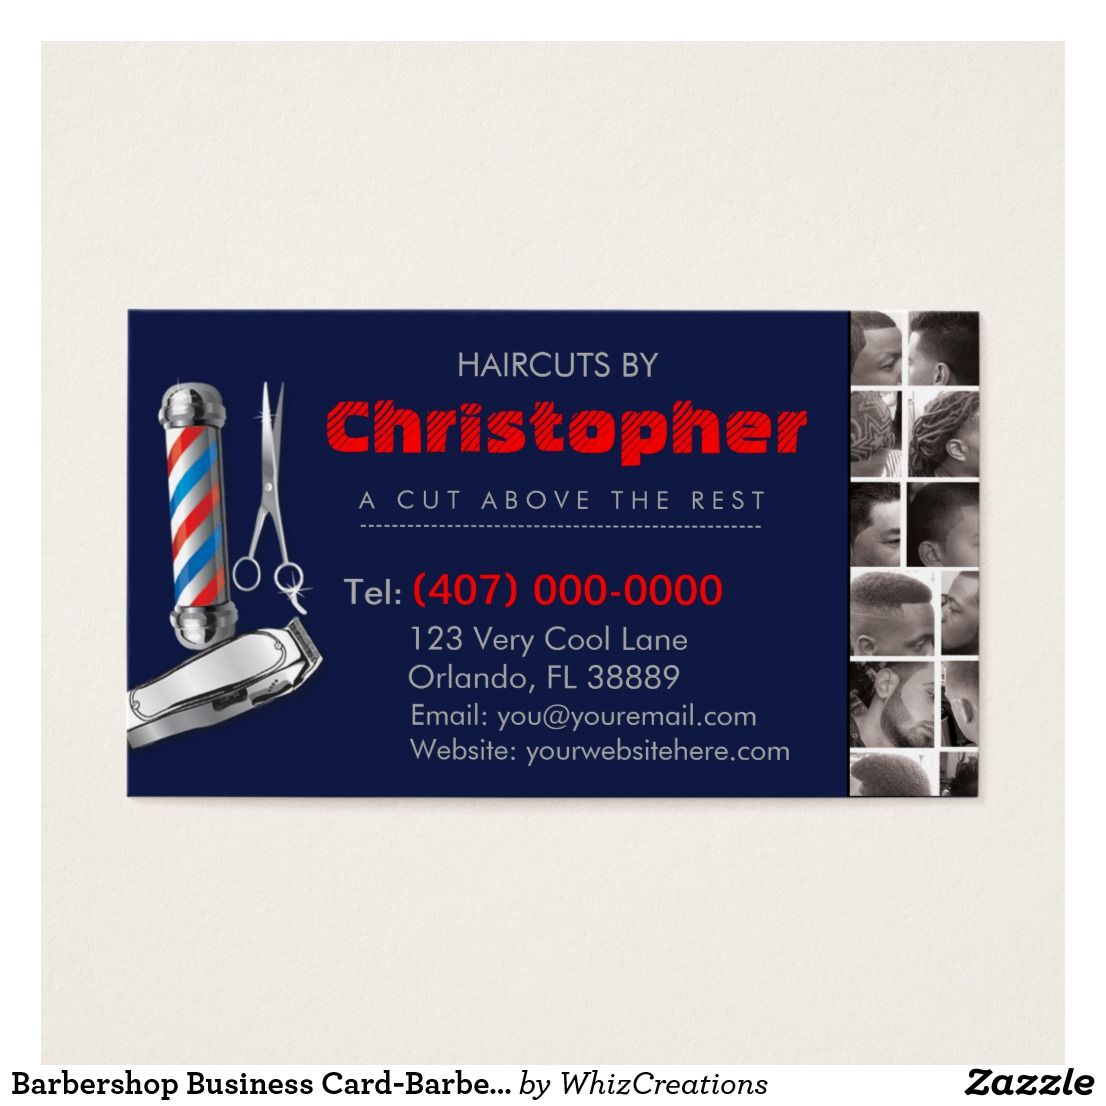 Barbershop Business Card-Barber pole, clippers com Business Card ...